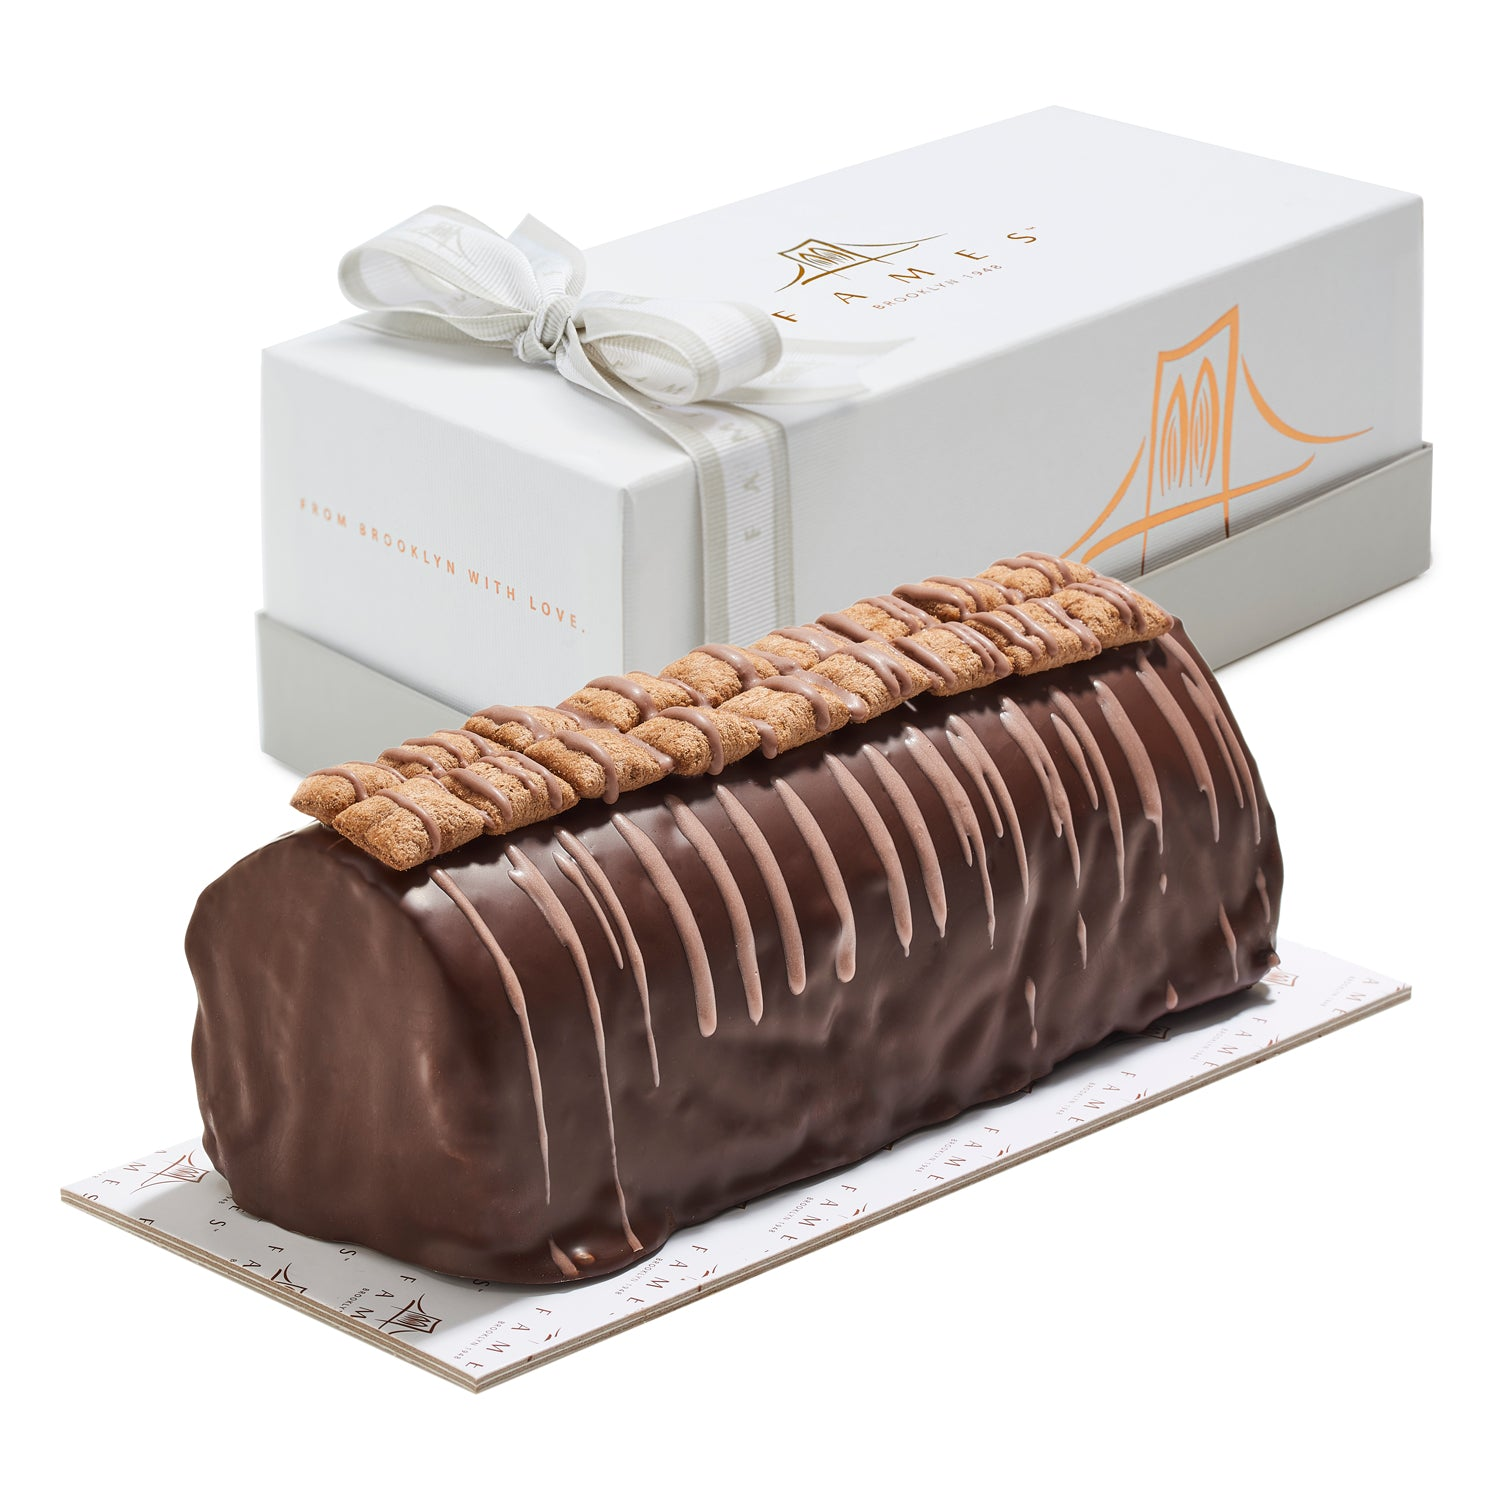 Crispy Chocolate Log In Gift Box